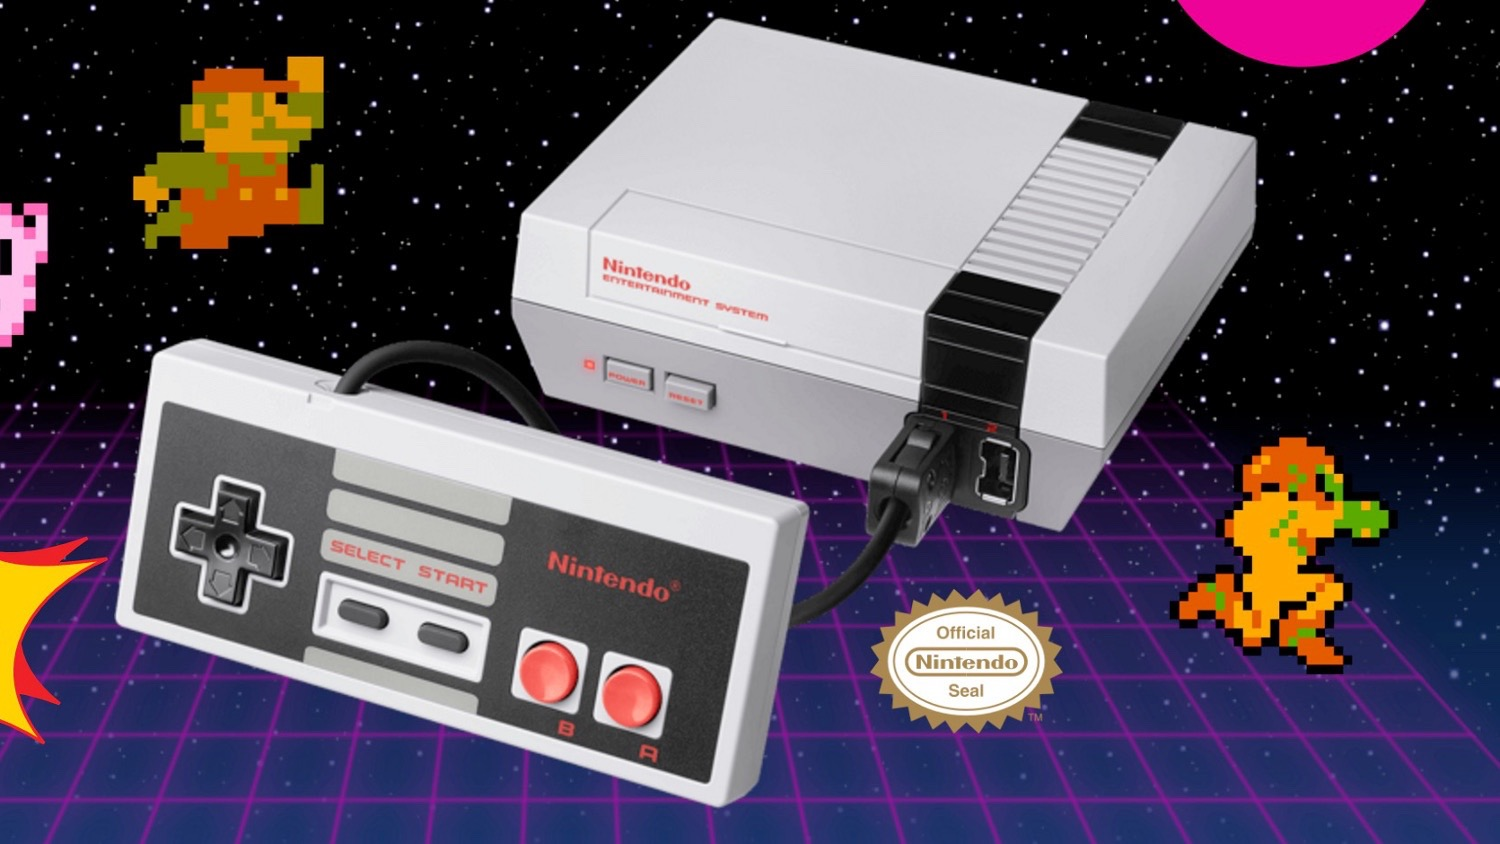 Console Magazine Nes Mini Hack Squeezes Every Nes Game Ever Onto The Tiny Console